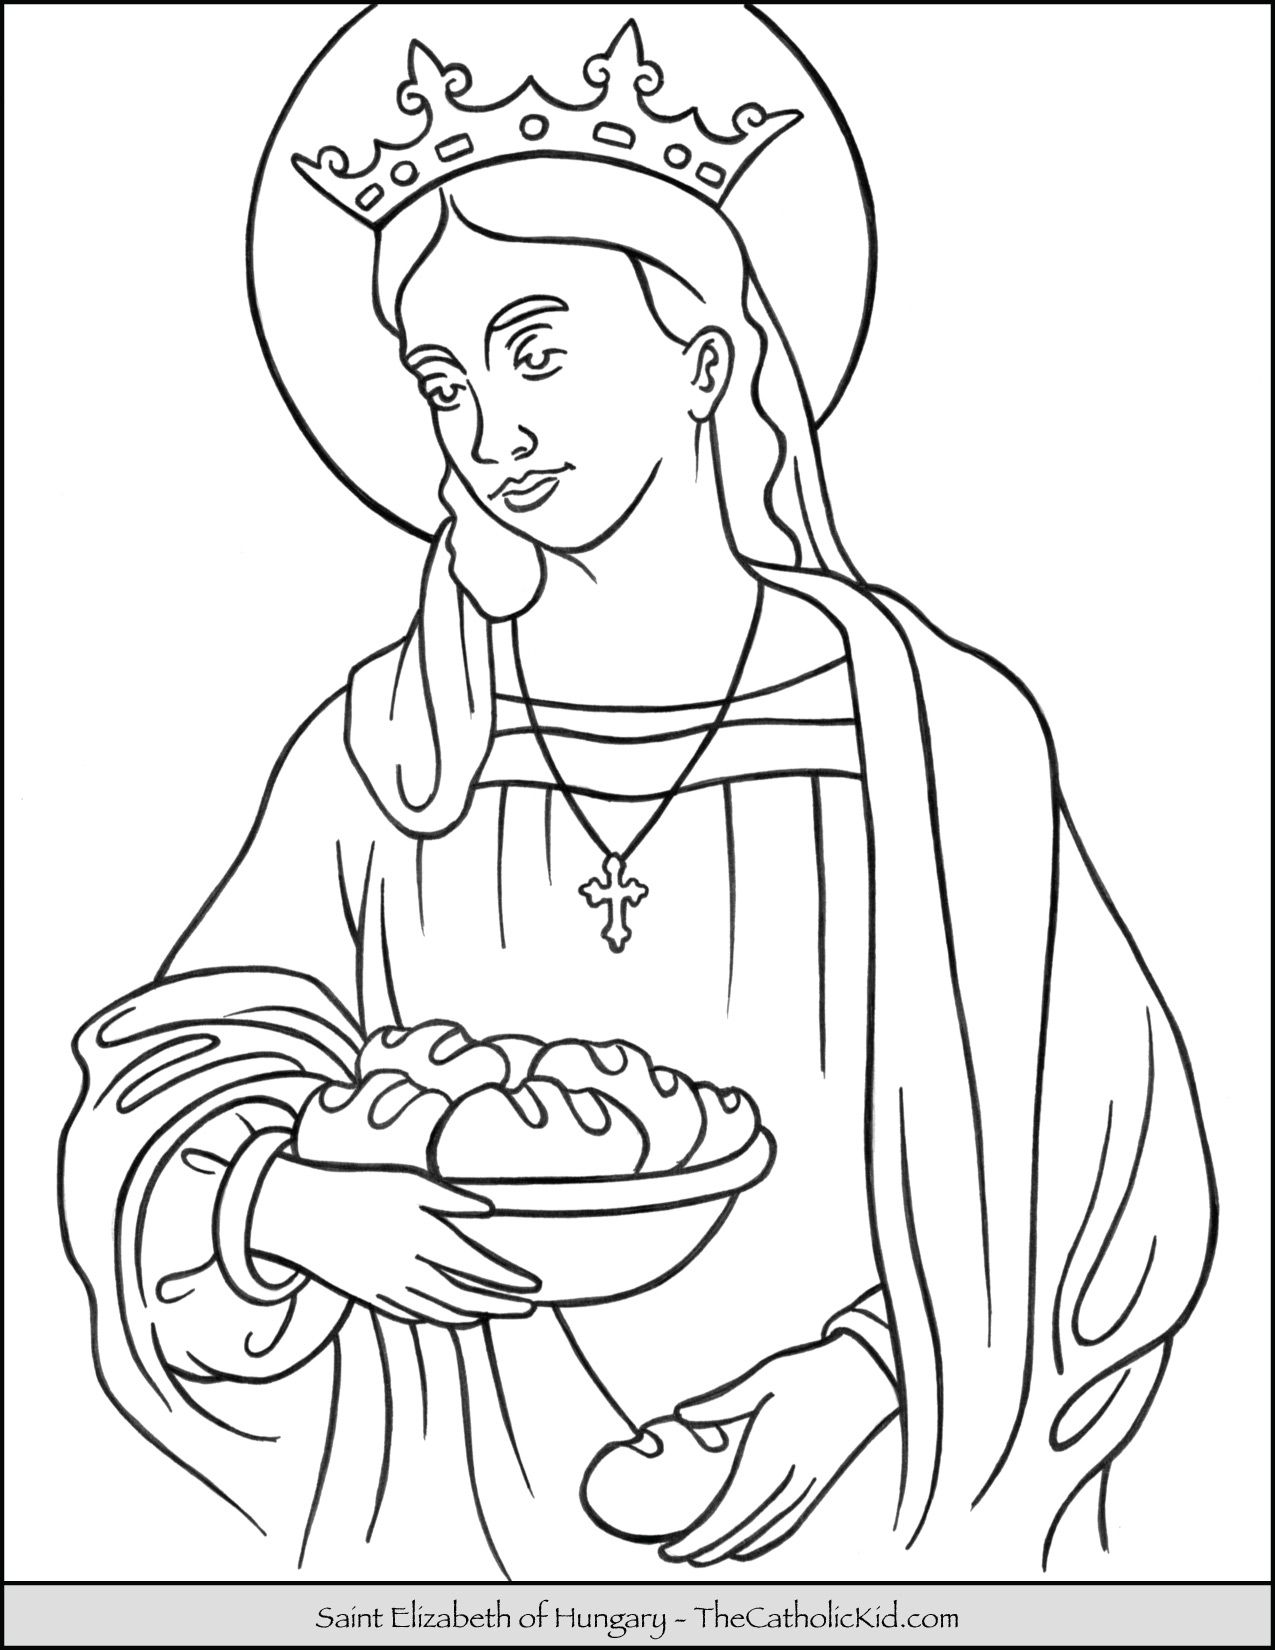 Saint Elizabeth Of Hungary Coloring Page Saint elizabeth